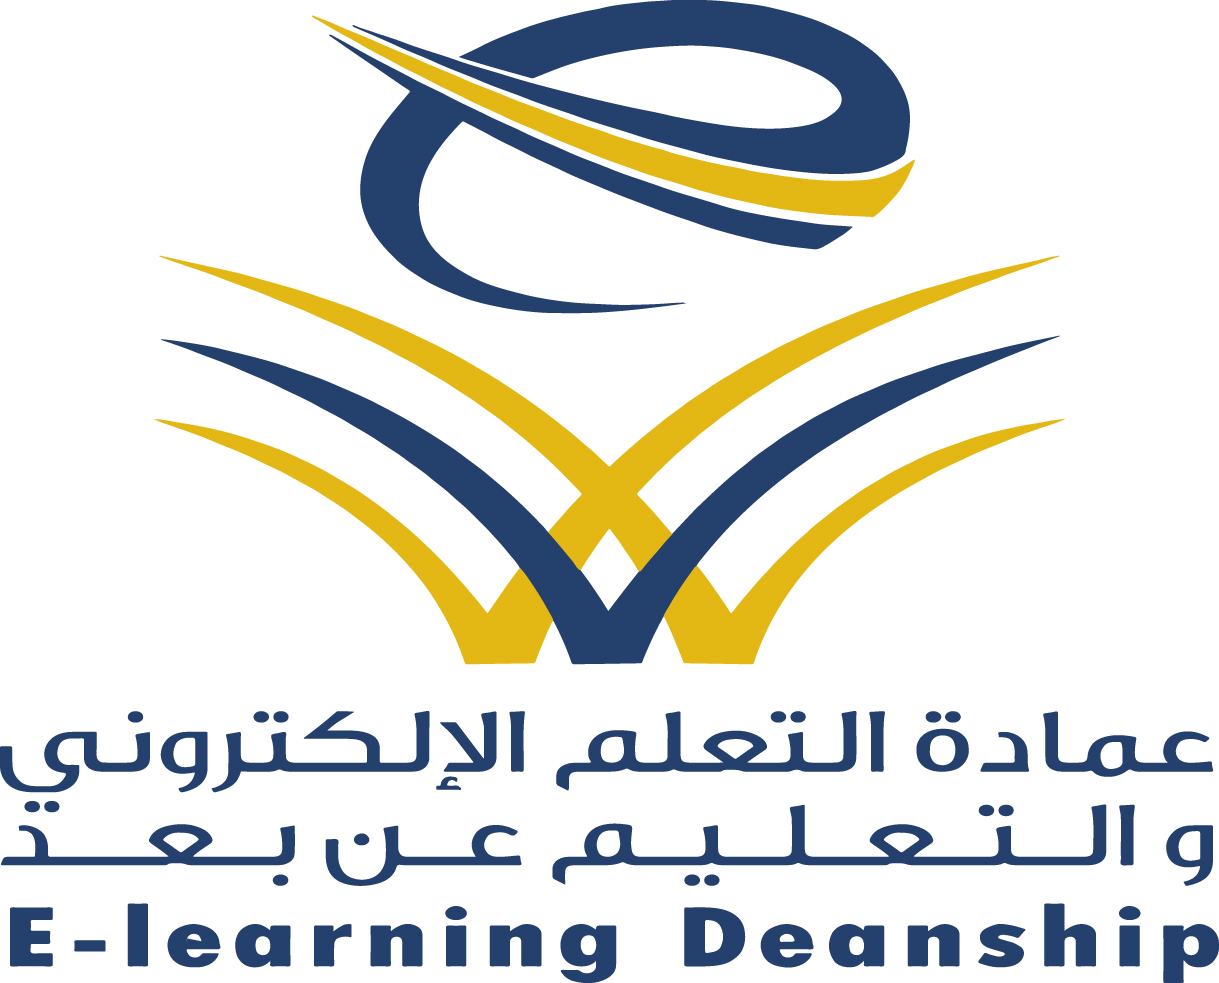 Elearning Deanship